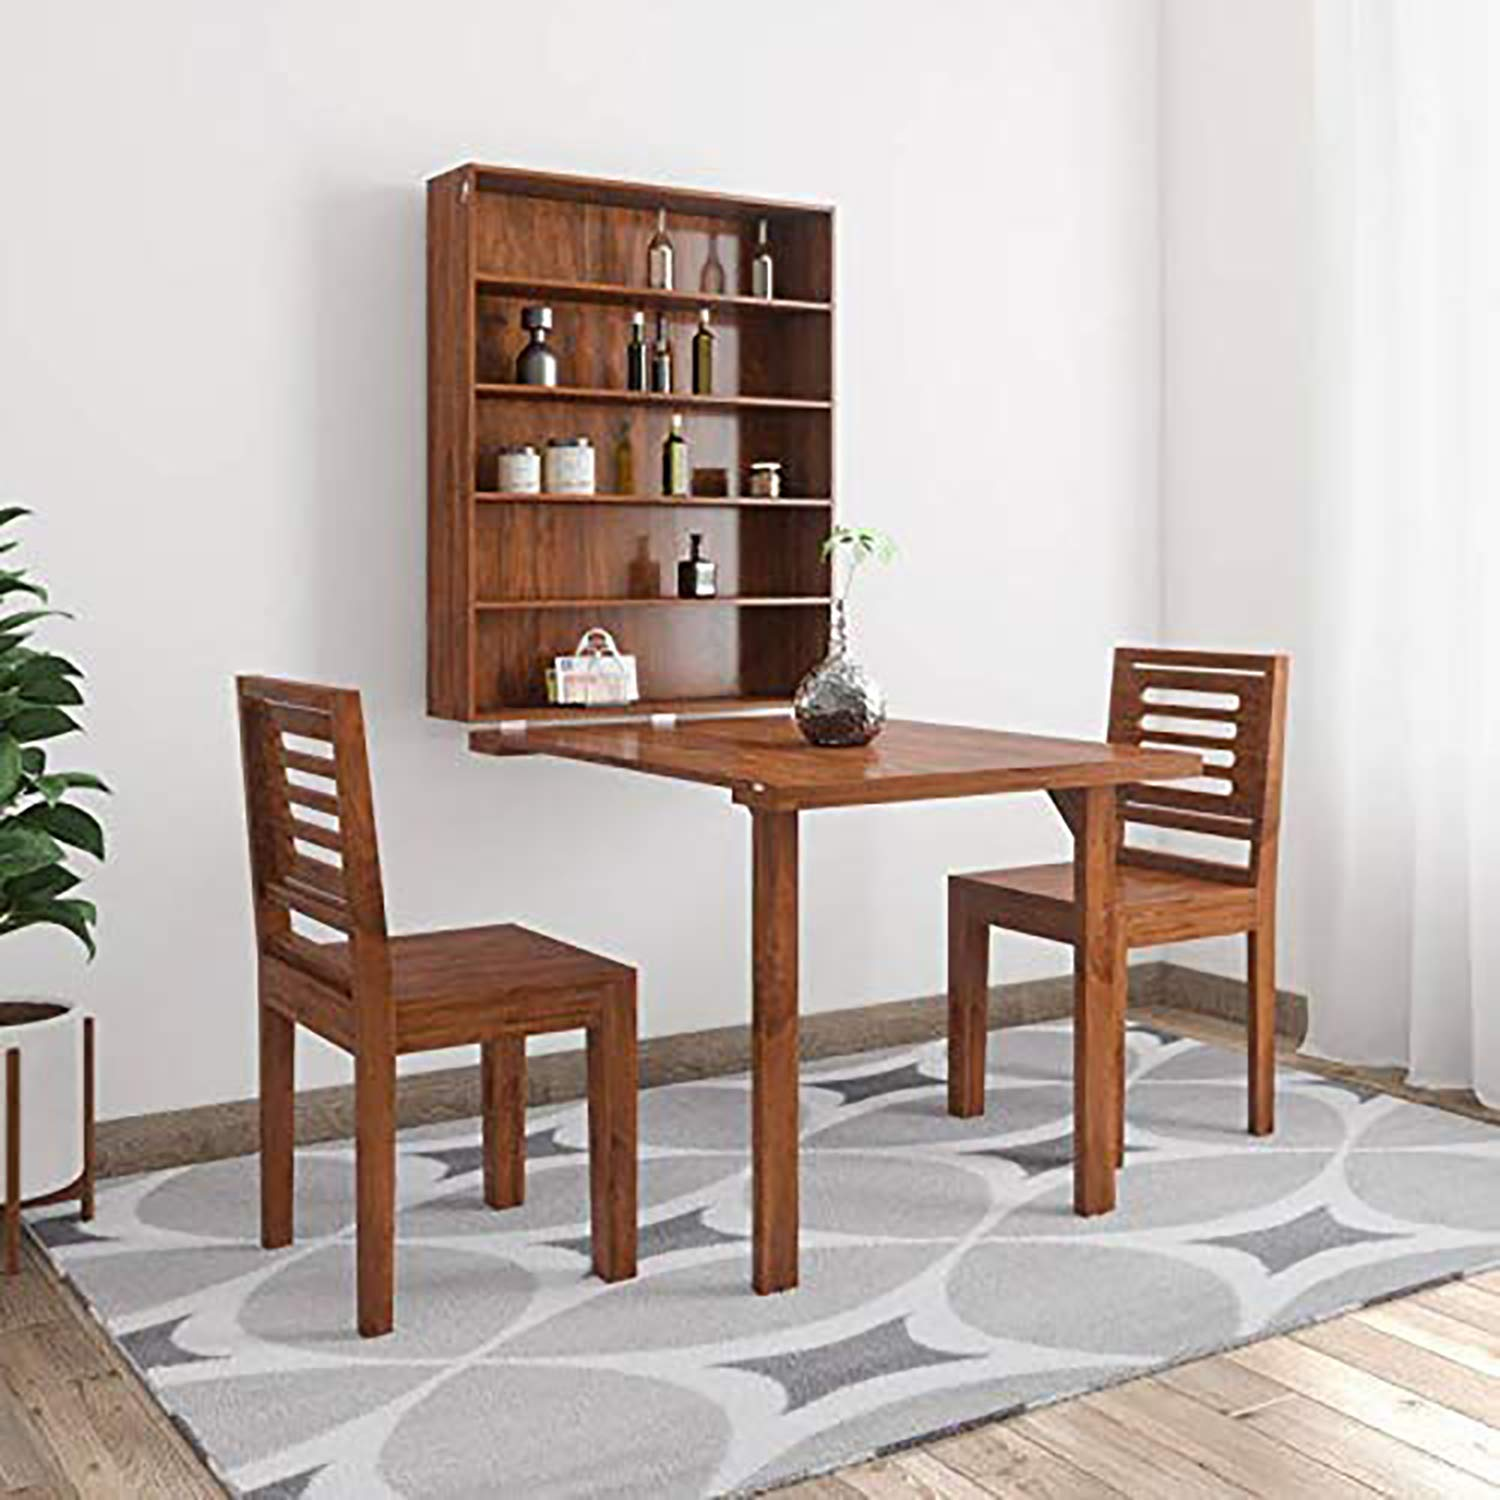 Corazzin Furniture Sheesham Wood Folding Dining Table For Living Room With 2 Chairs Provincial Teak Finish Wall Mounted Amazon In Home Kitchen